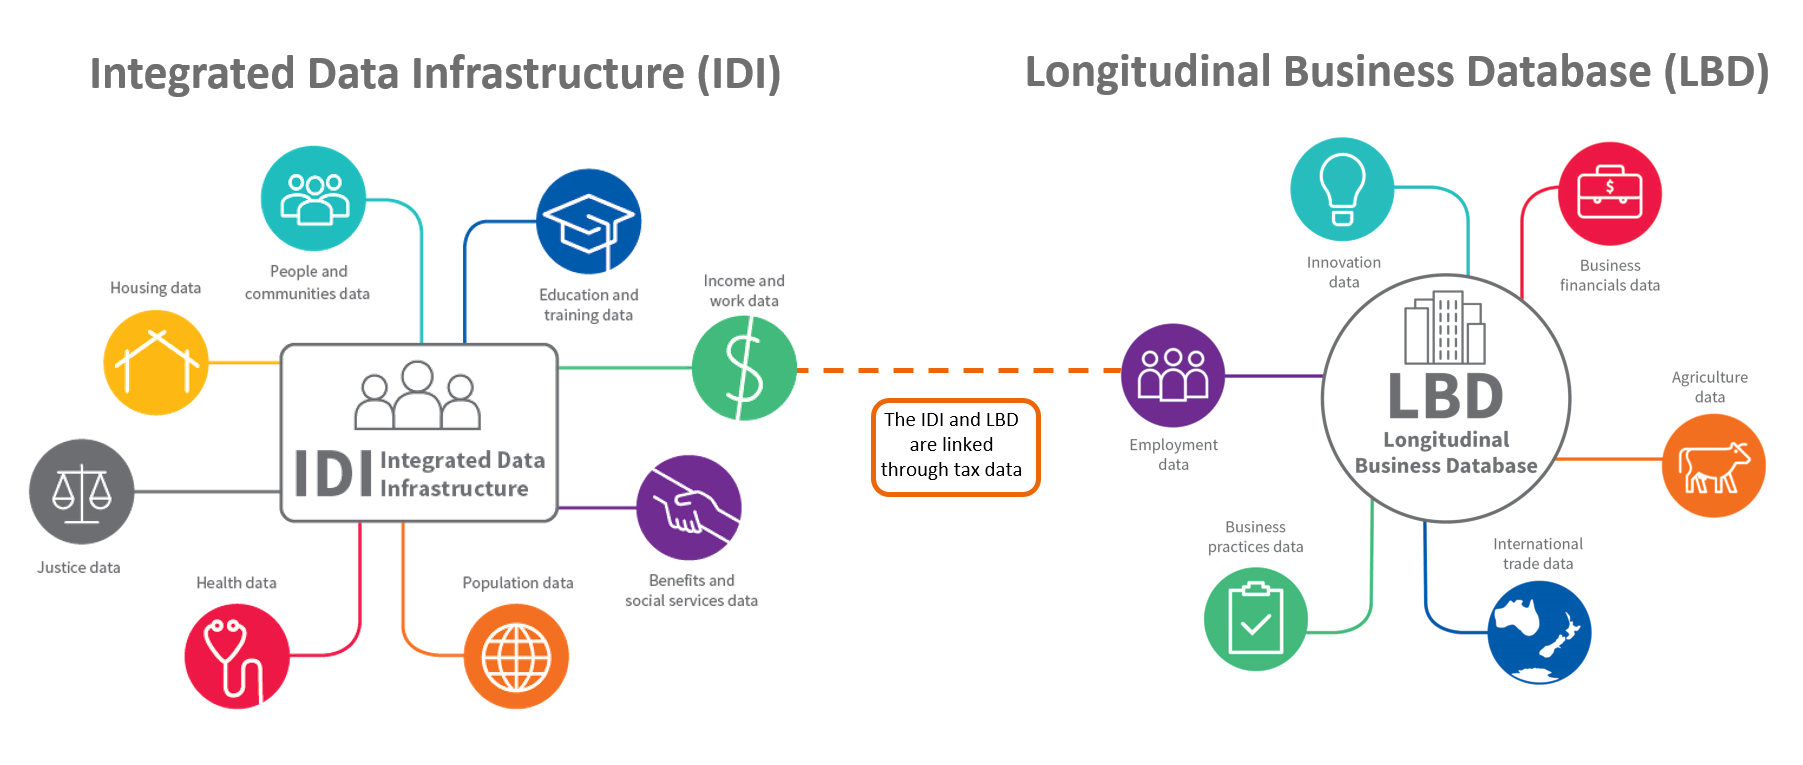 Integrated Data Infrastructure and Longitudinal Business Database